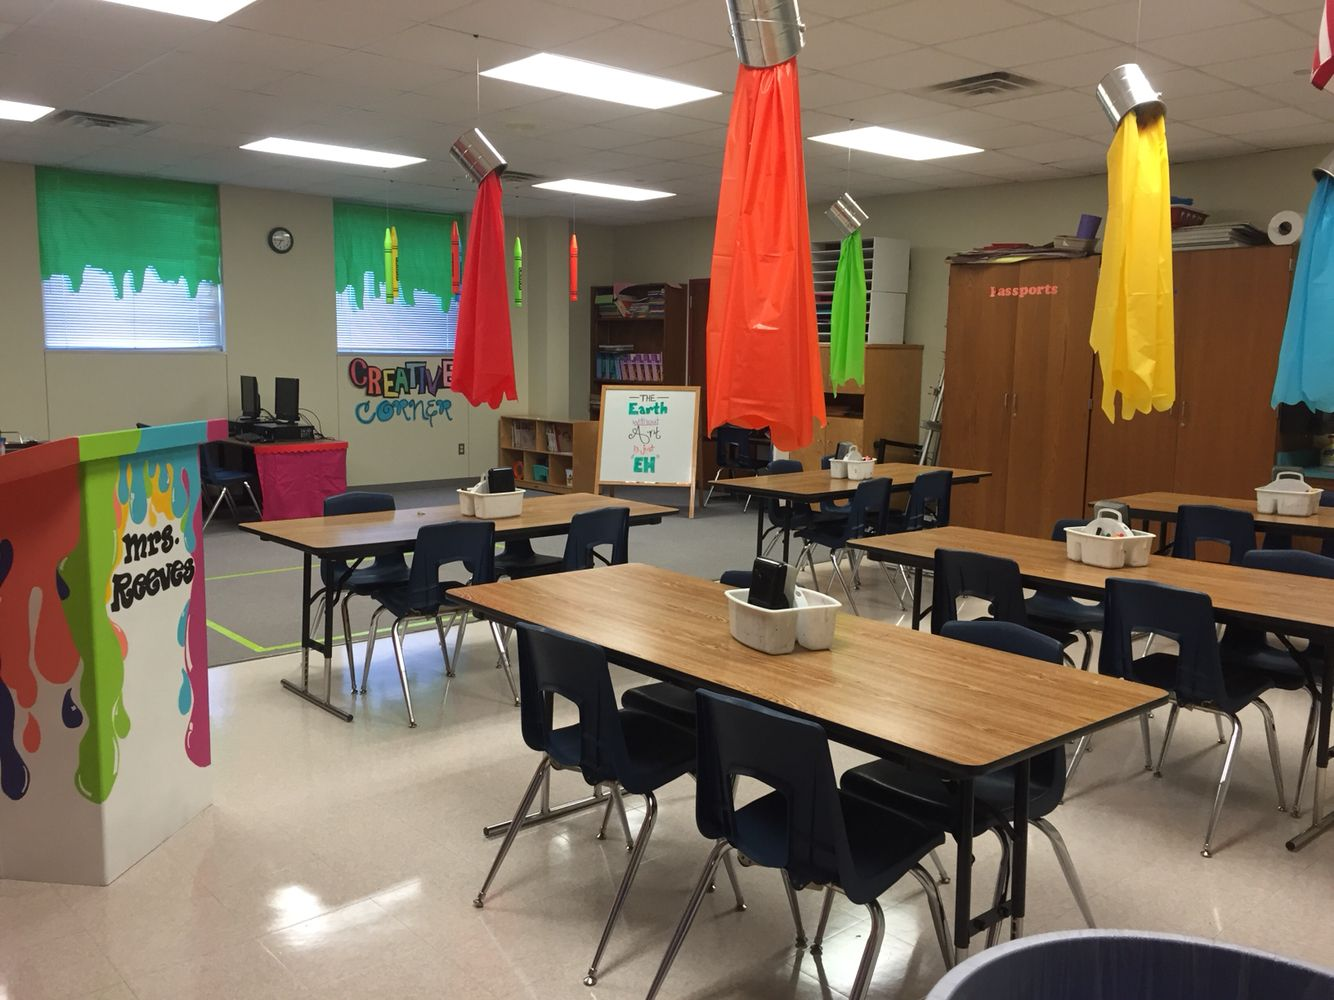 Art elementary classroom. I used several ideas from Pinterest to make it my own and I figured I'd share it for others! The paint buckets above the table are used to mark the tables by color groups.